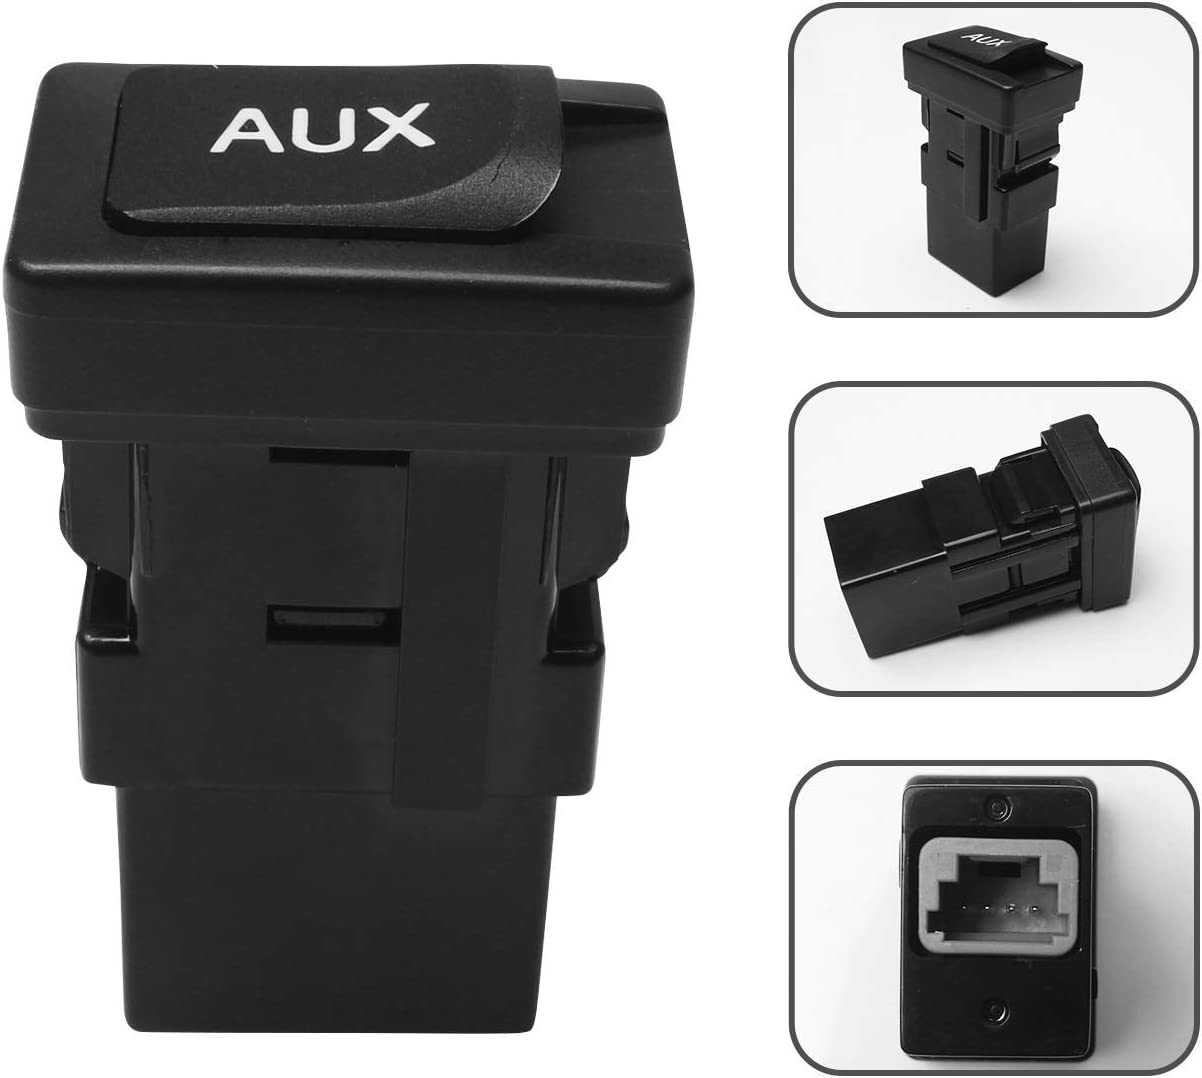 Monrand 86190-06010 Aux Jack Car Input Auxiliary Adapter Audio store Weekly update